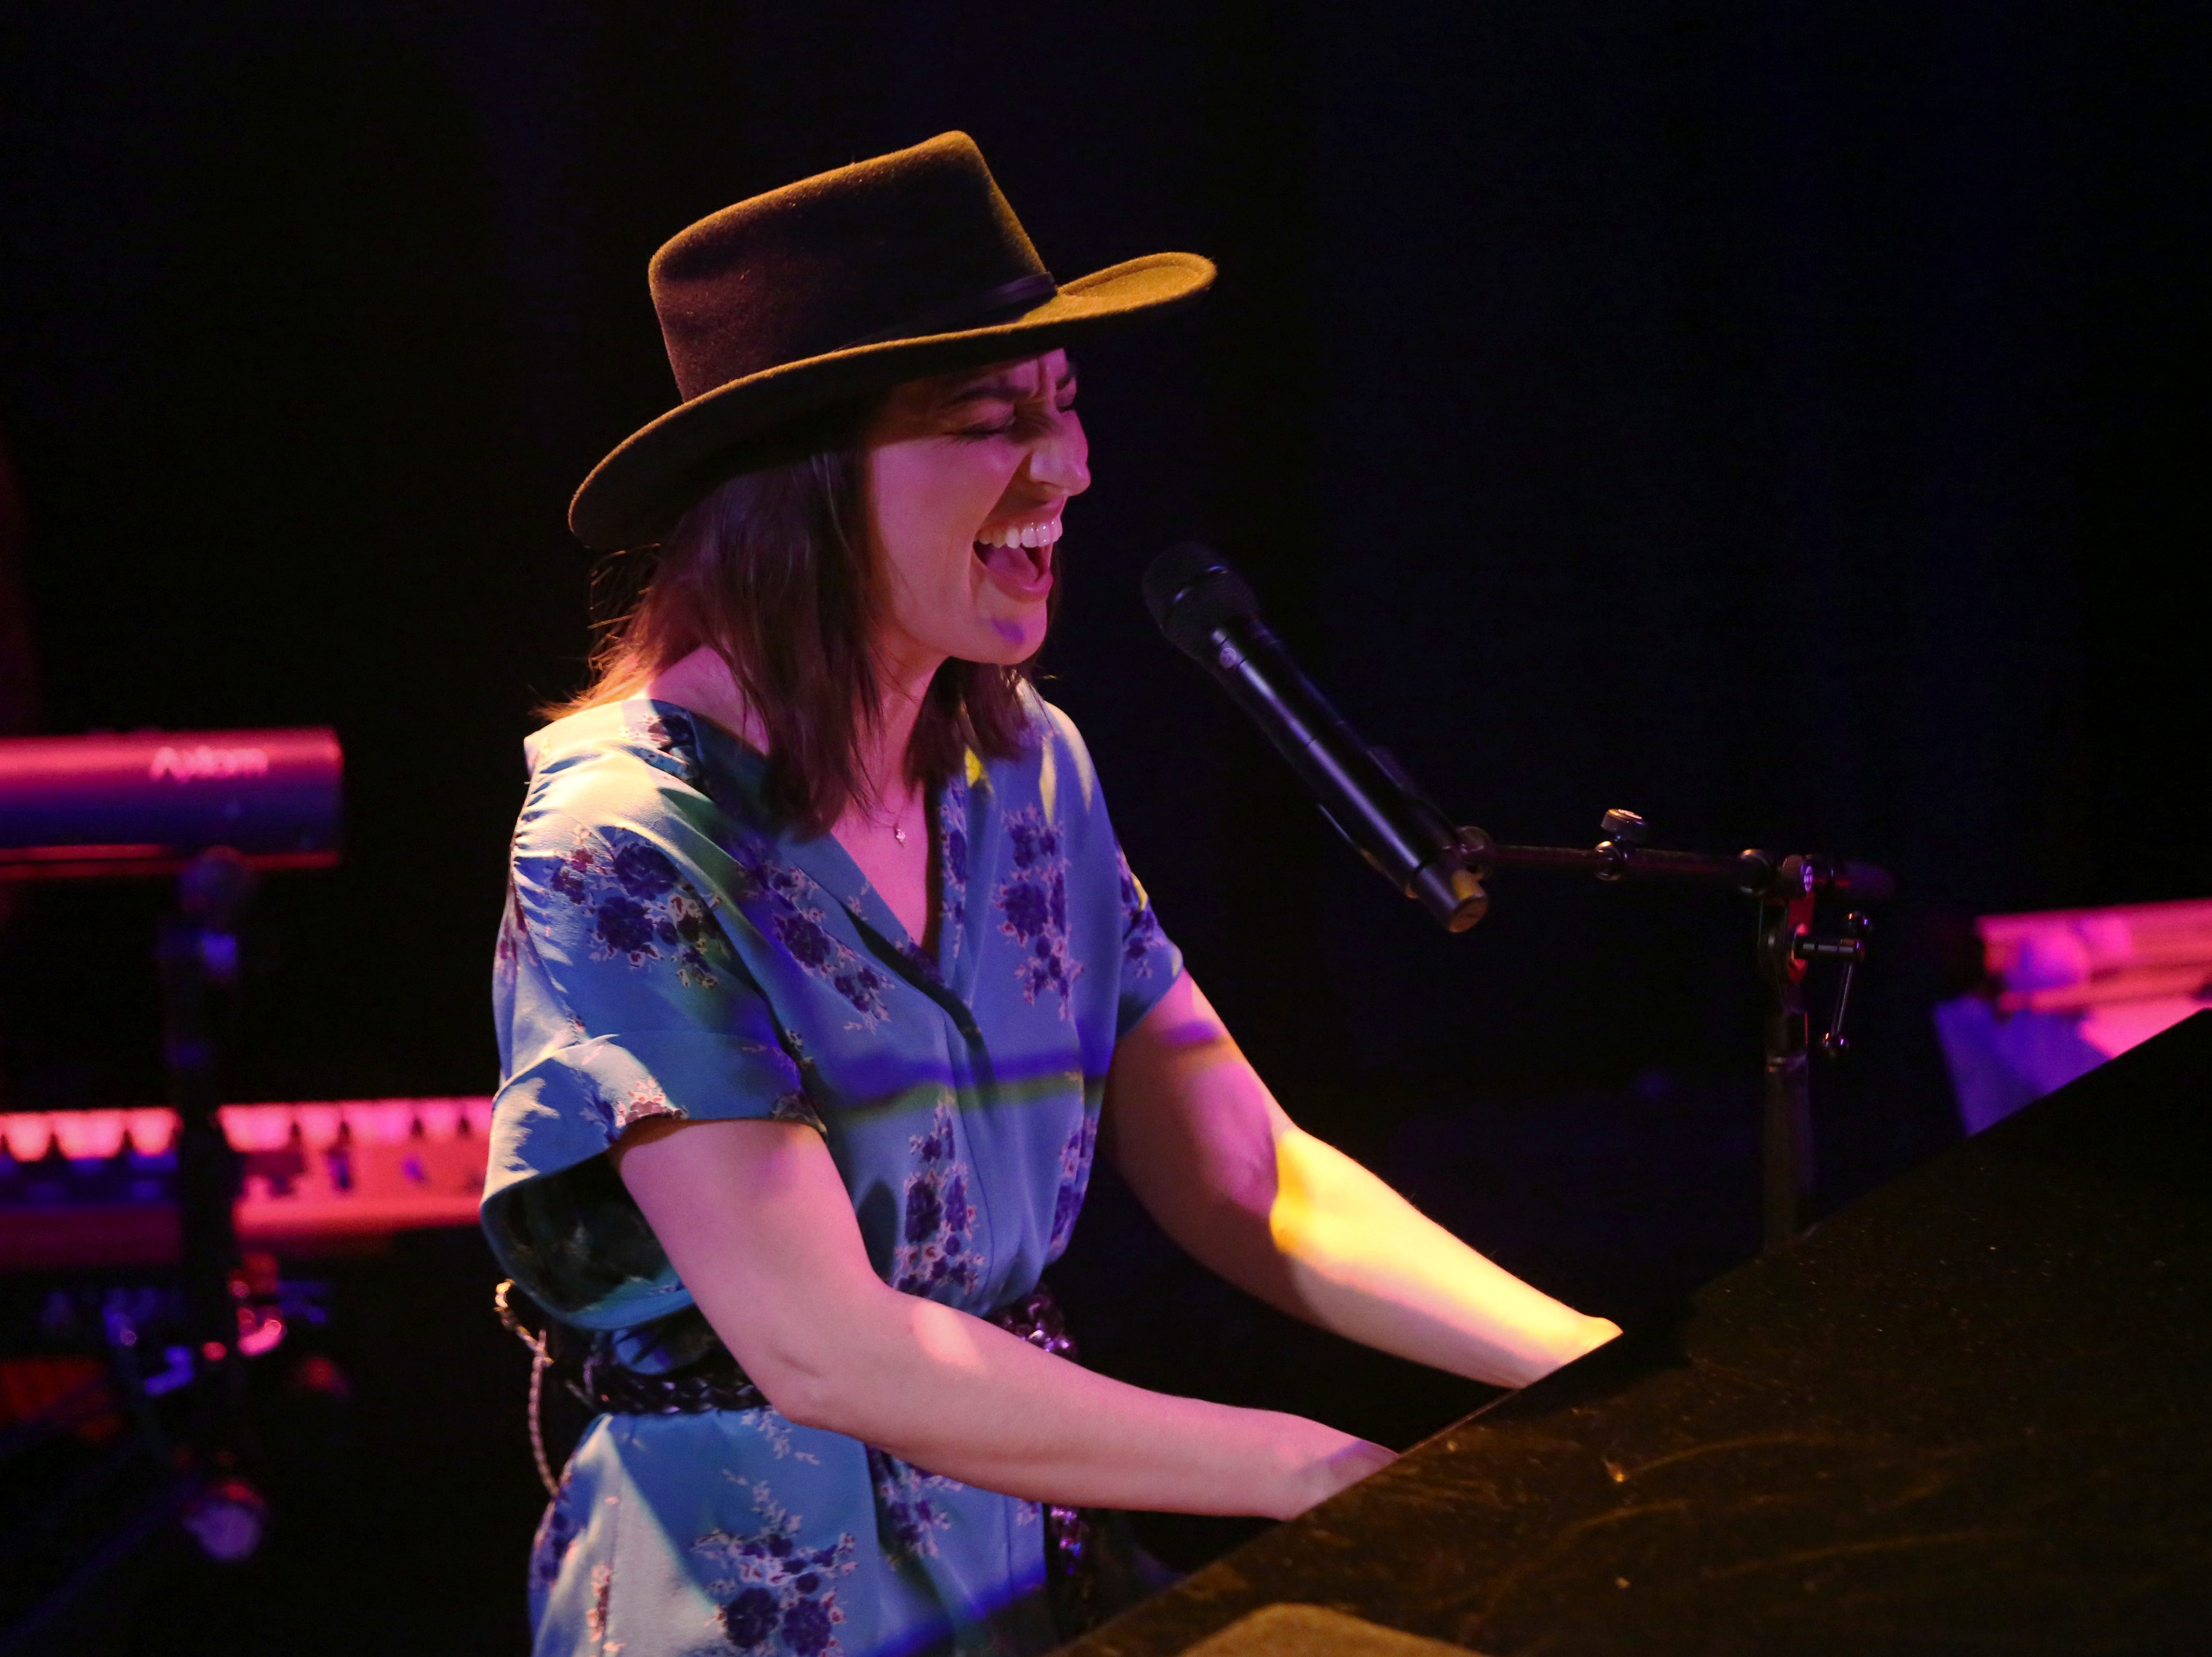 Sara Bareilles performs at the Troubadour on Tuesday, March 19, 2019, in West Hollywood, Calif. (Photo by Willy Sanjuan/Invision/AP) ORG XMIT: CAWS102